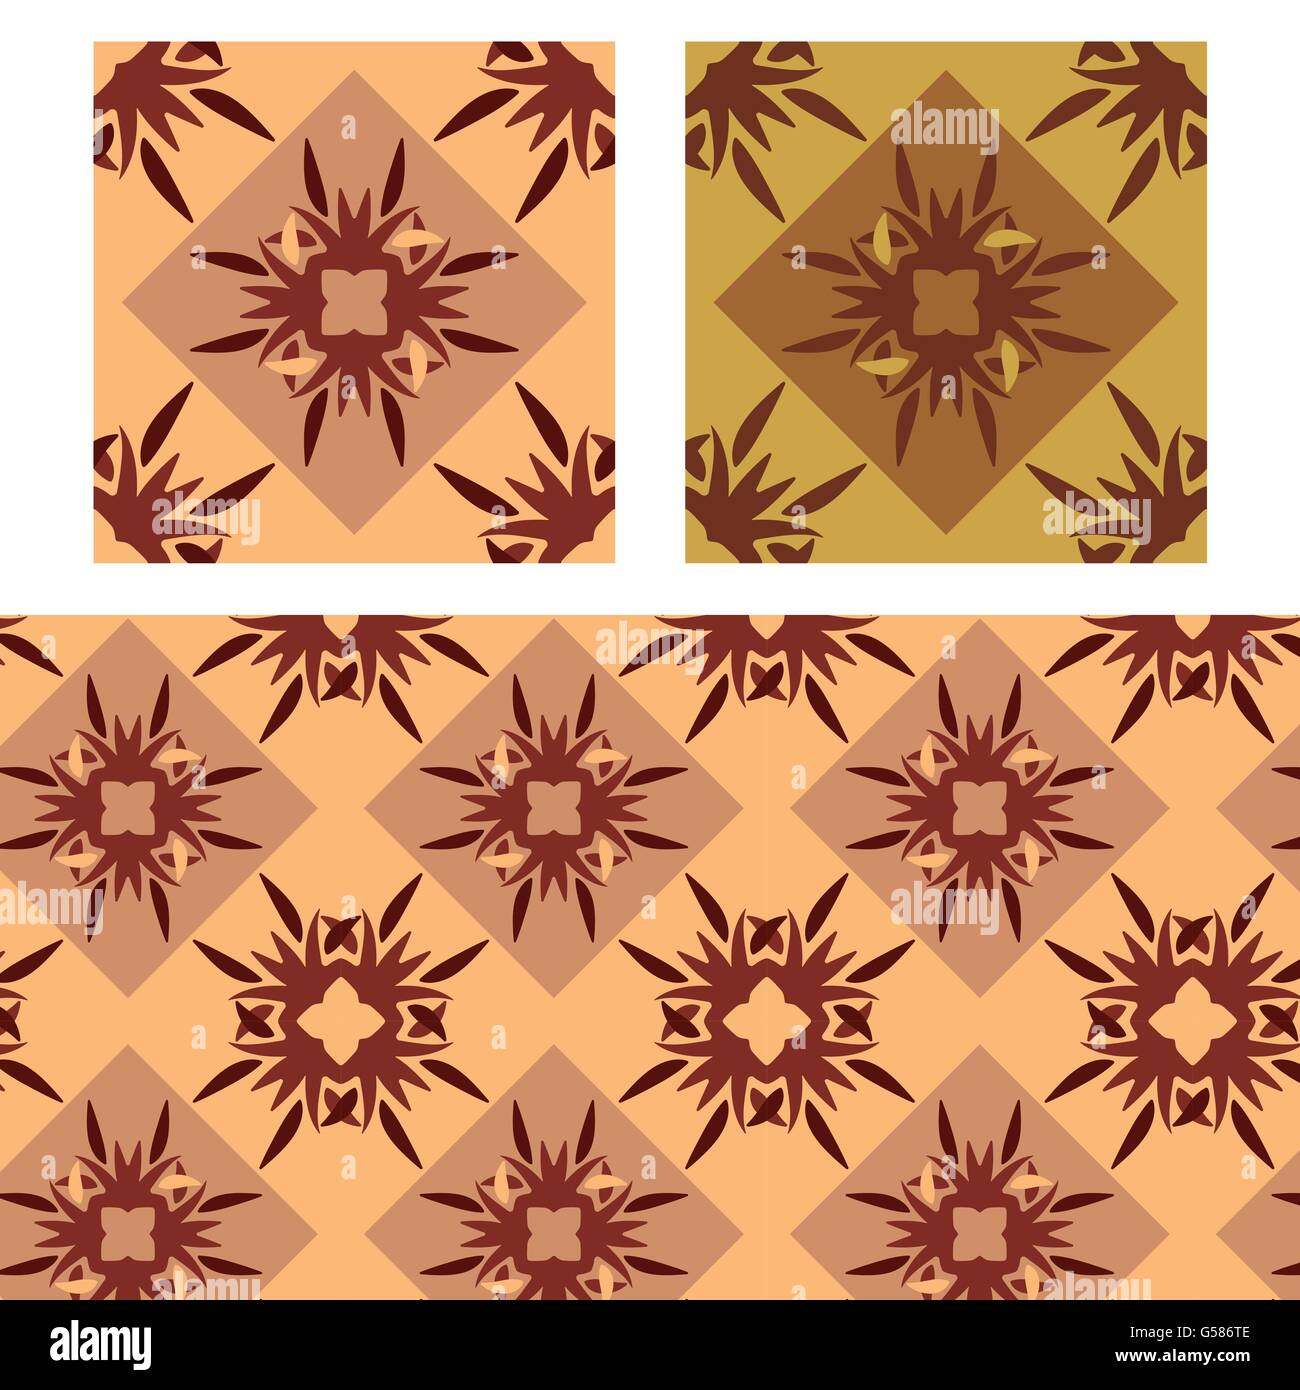 abstract redish plain seamless patterns vector illustration - Stock Image